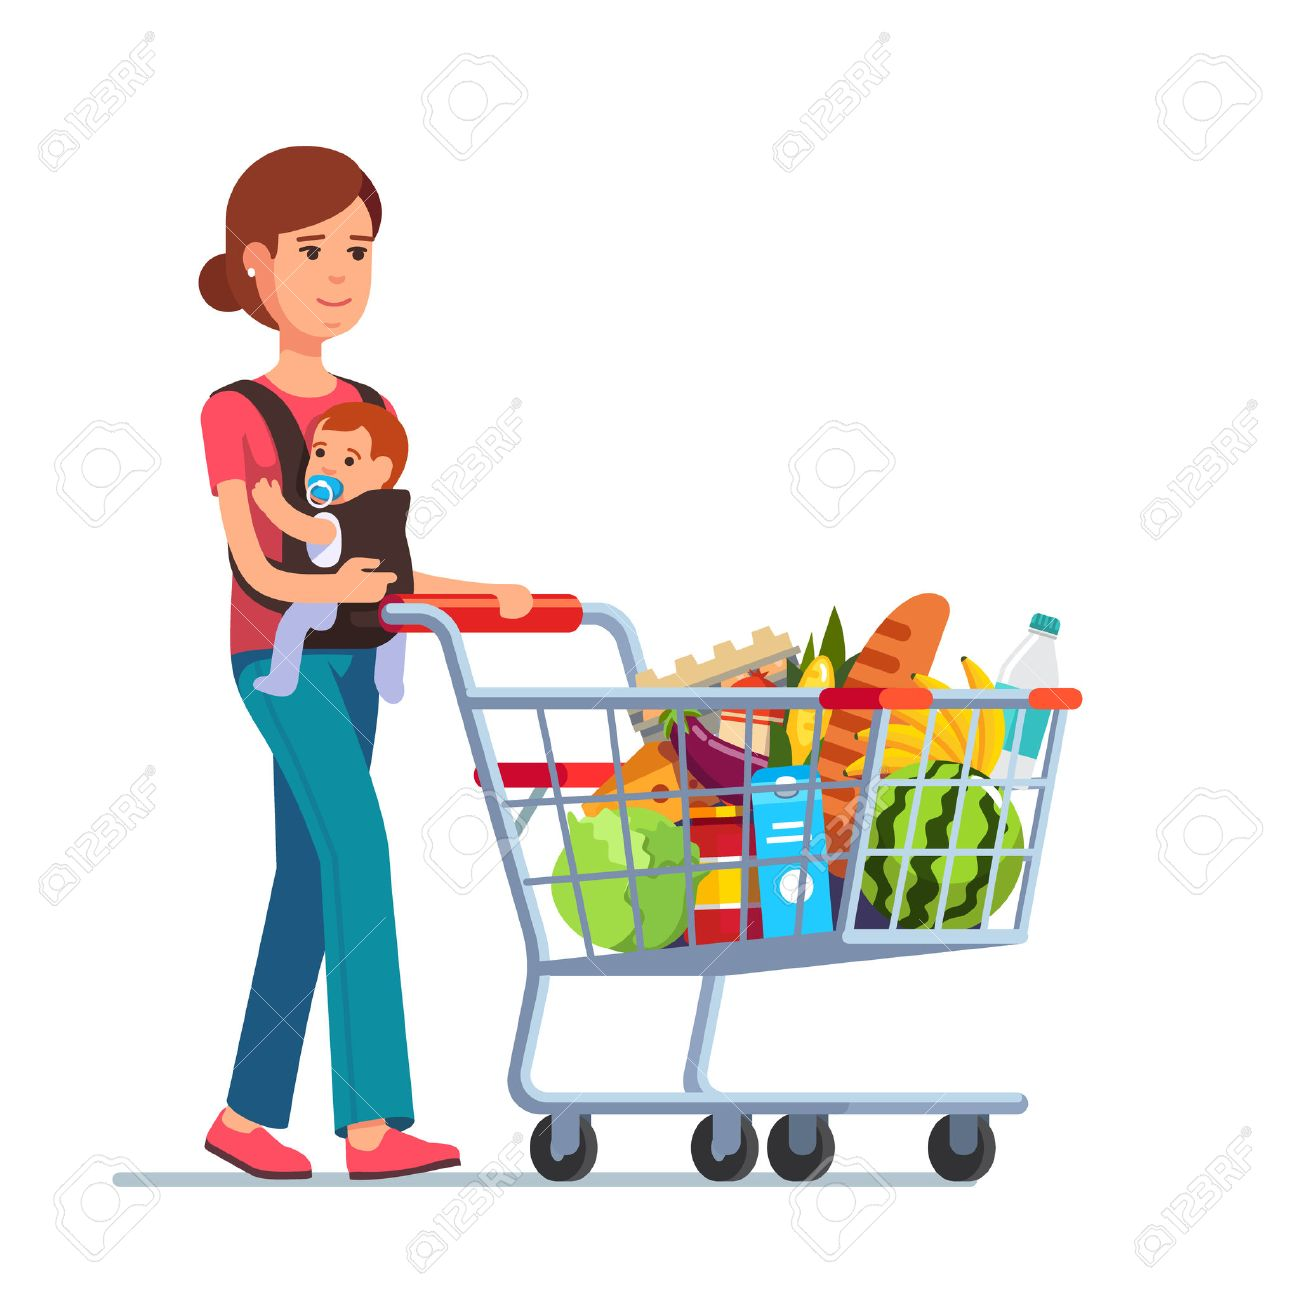 Young mother with son baby toddler in a sling pushing supermarket shopping cart full of groceries. Flat style vector illustration isolated on white background. - 54217159